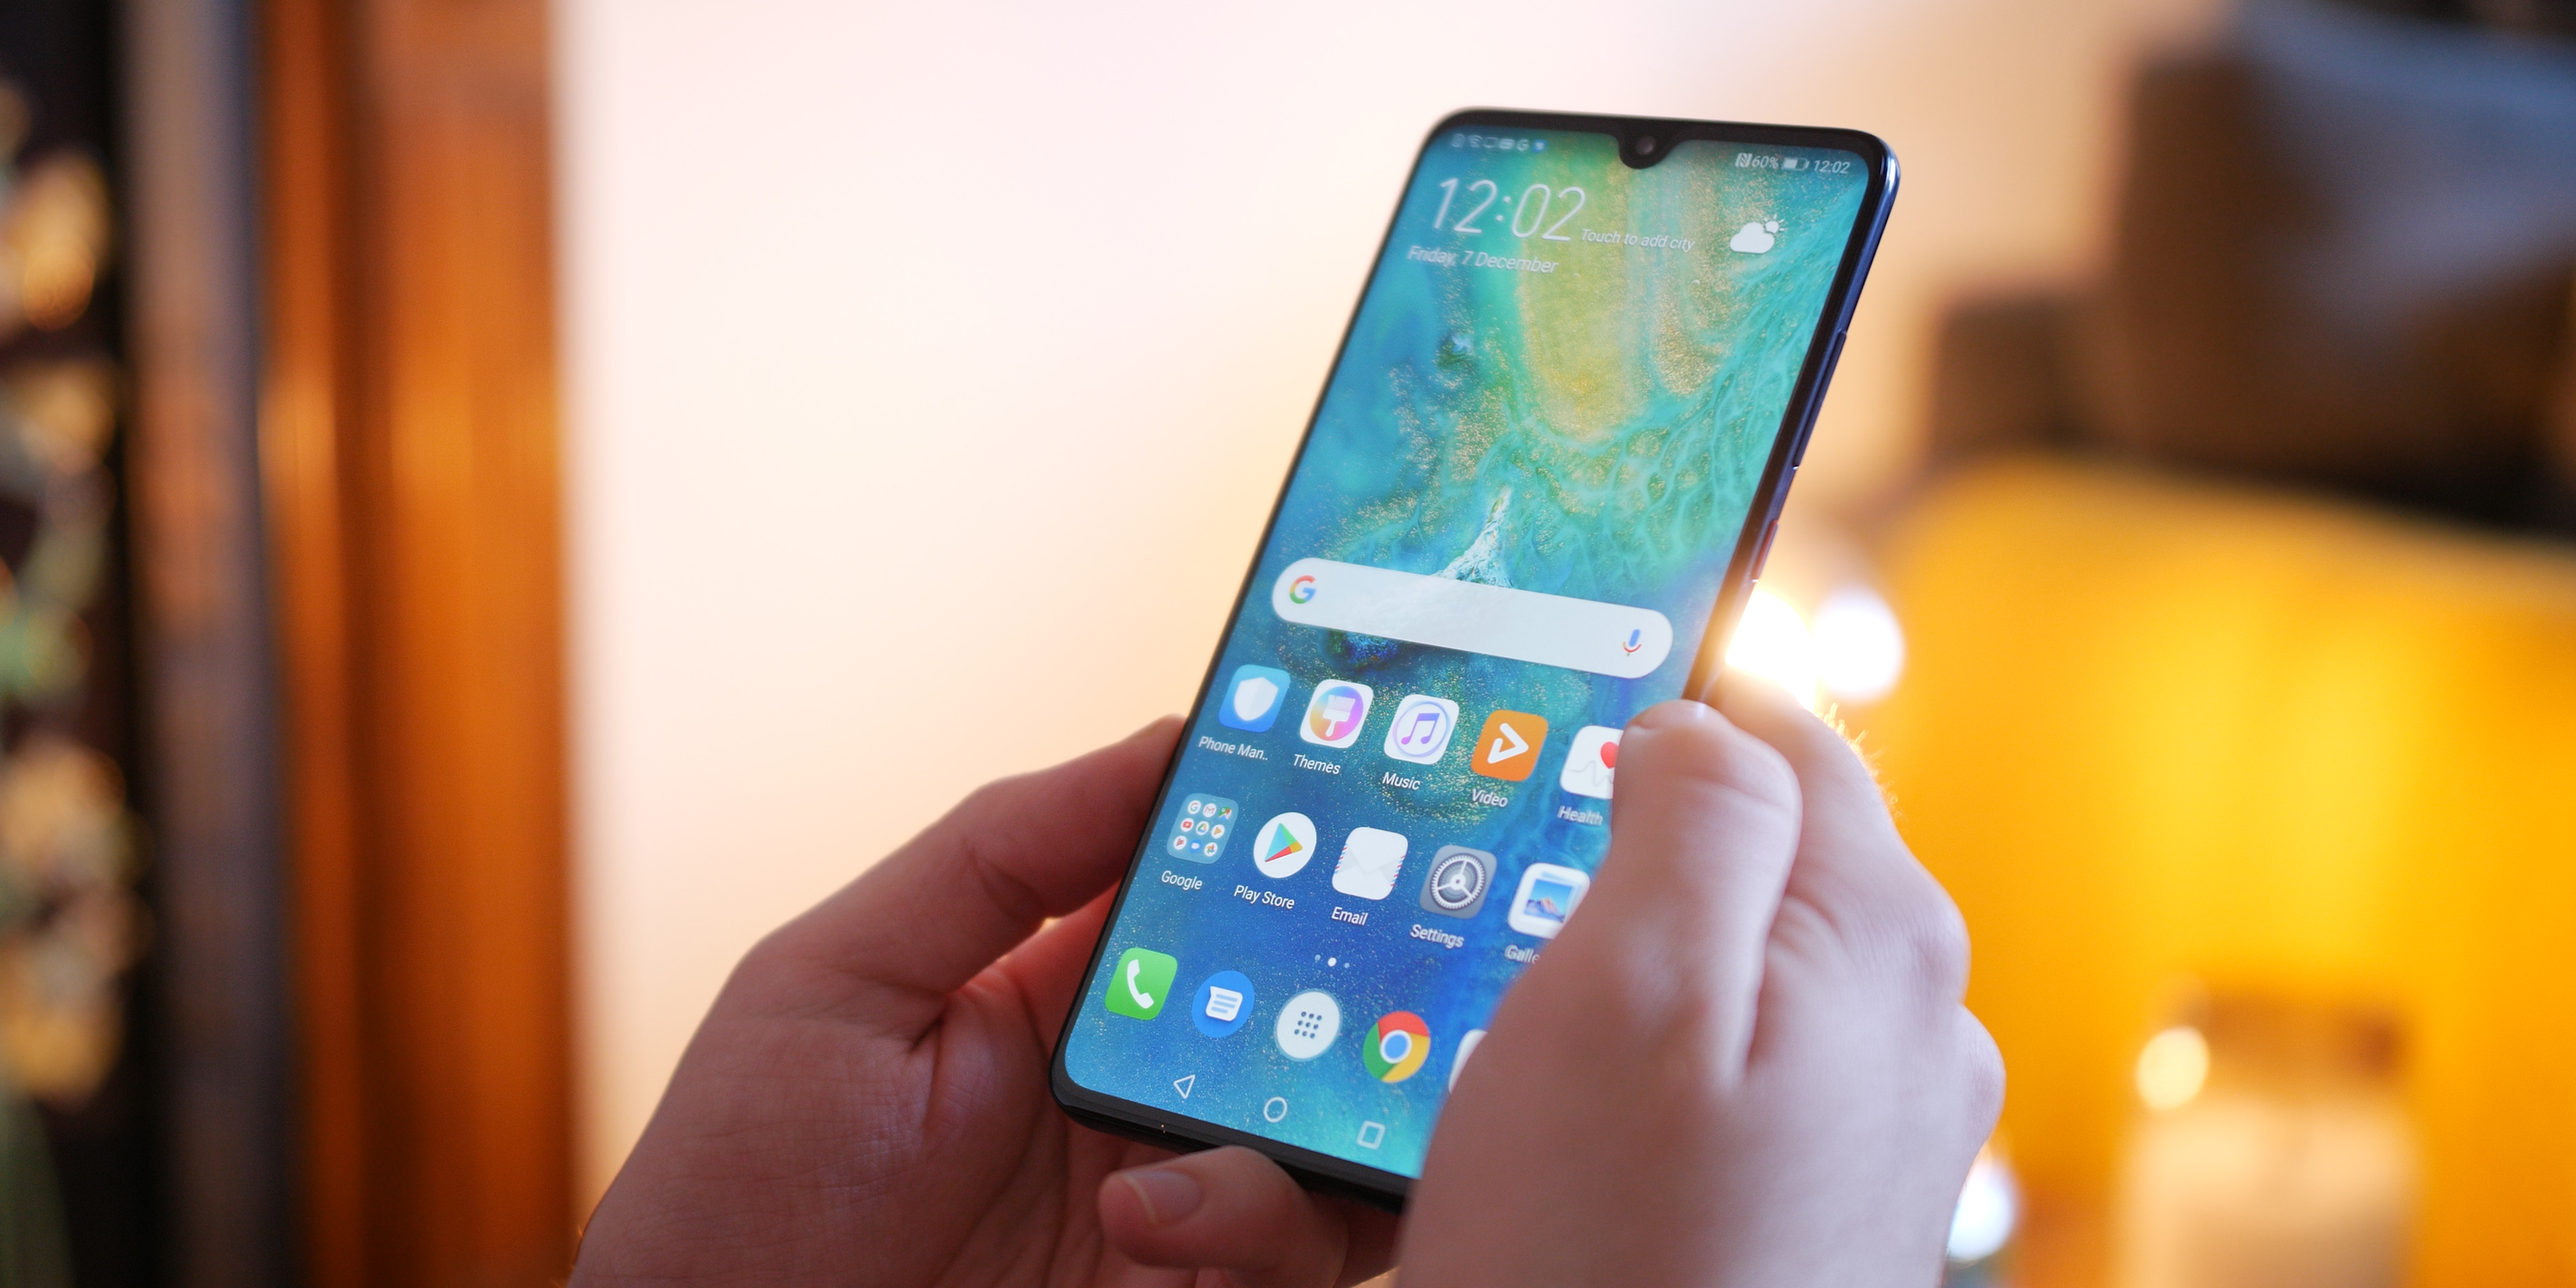 EMUI 9.1 beta rolling out to 12 devices including Huawei Mate 20/P20 Lite, Honor View 20, Honor 8X in China ahead of global launch